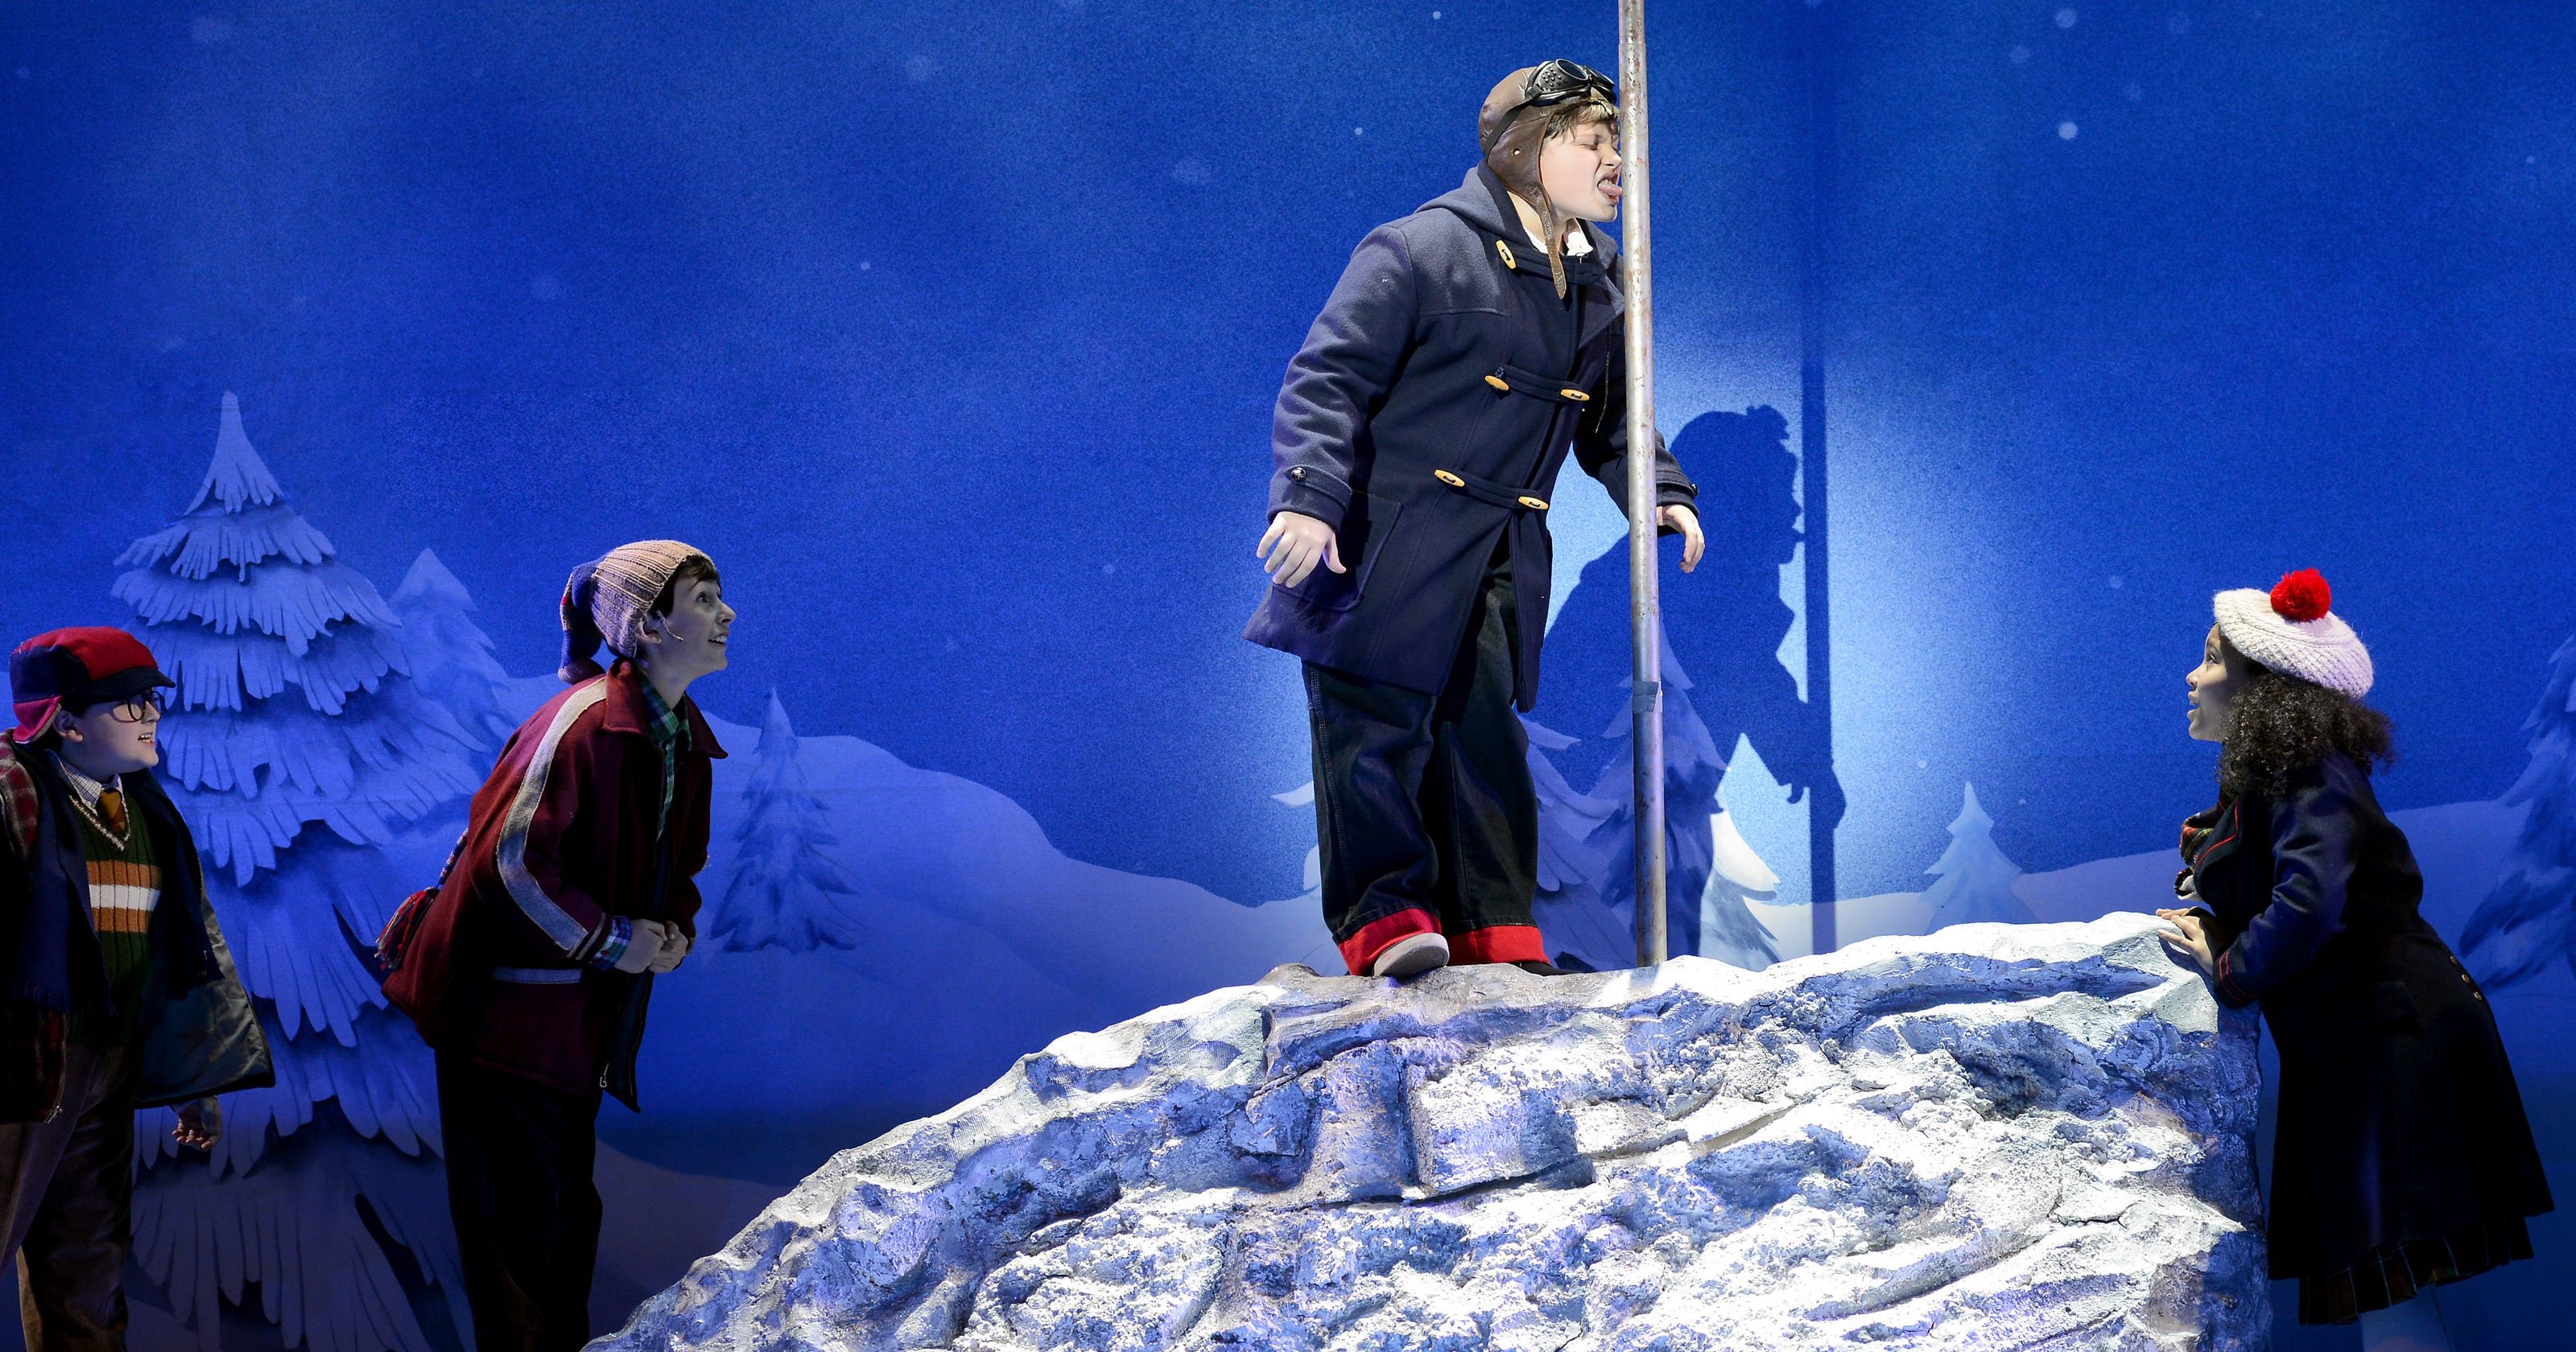 A Christmas Story The Musical.A Christmas Story The Musical Is New Holiday Must See Review